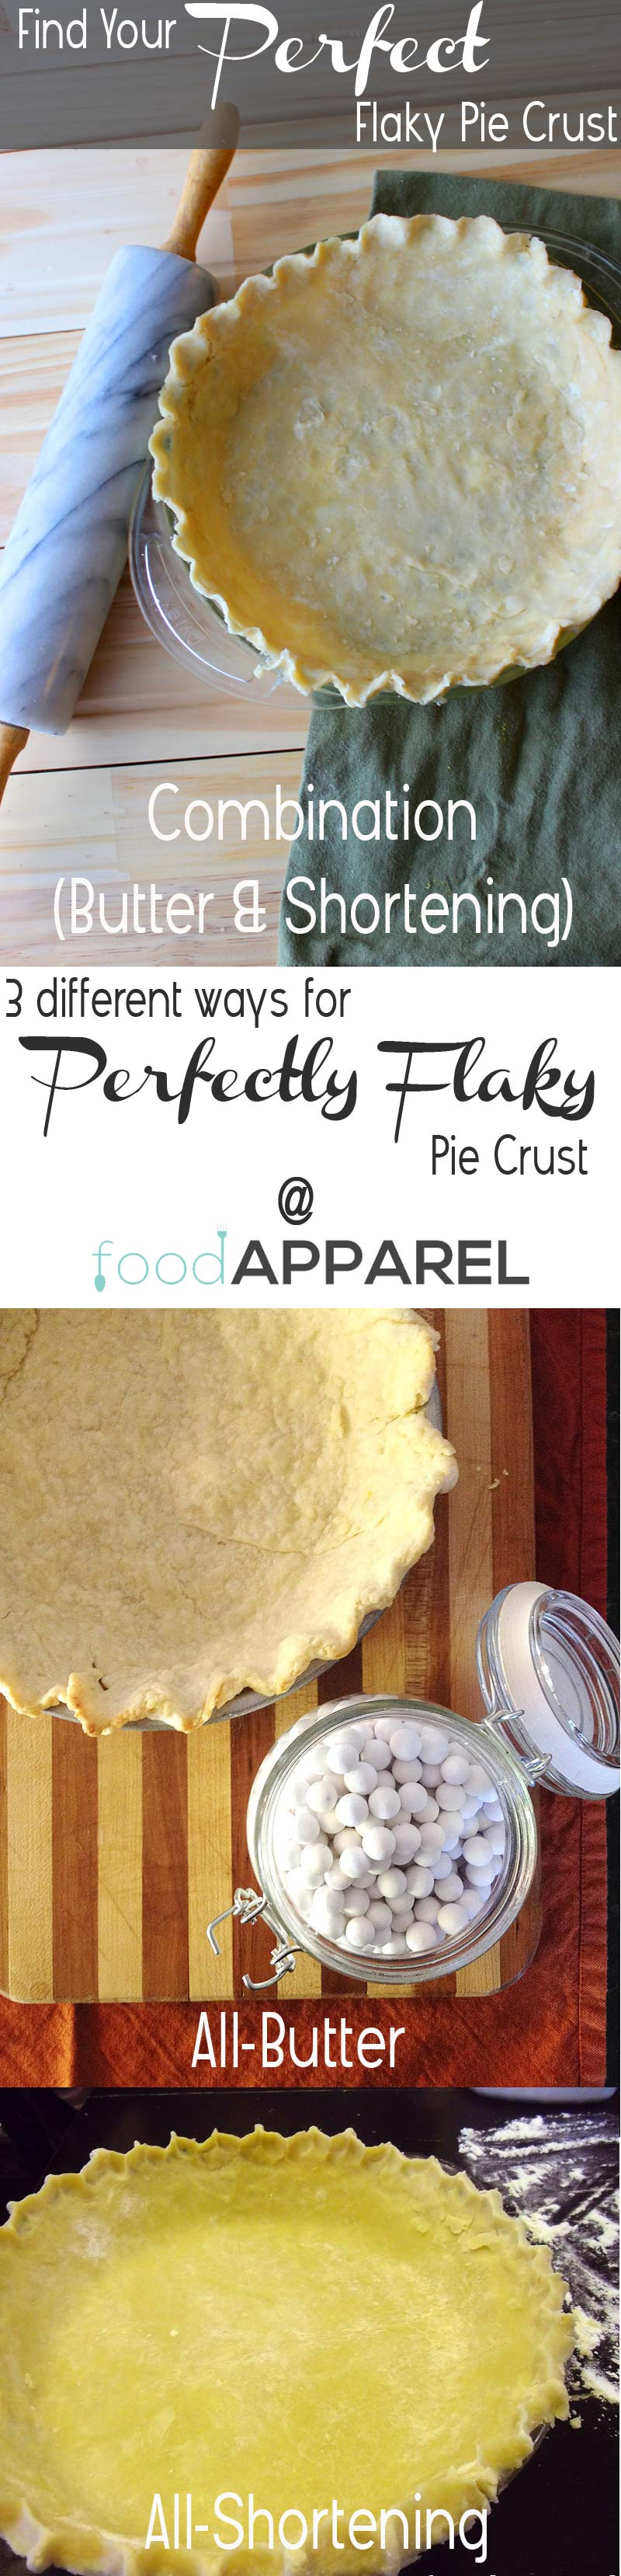 Find YOUR PERFECT flaky pie crust: 3 ways to try out (combo, butter, shortening) @foodapparel